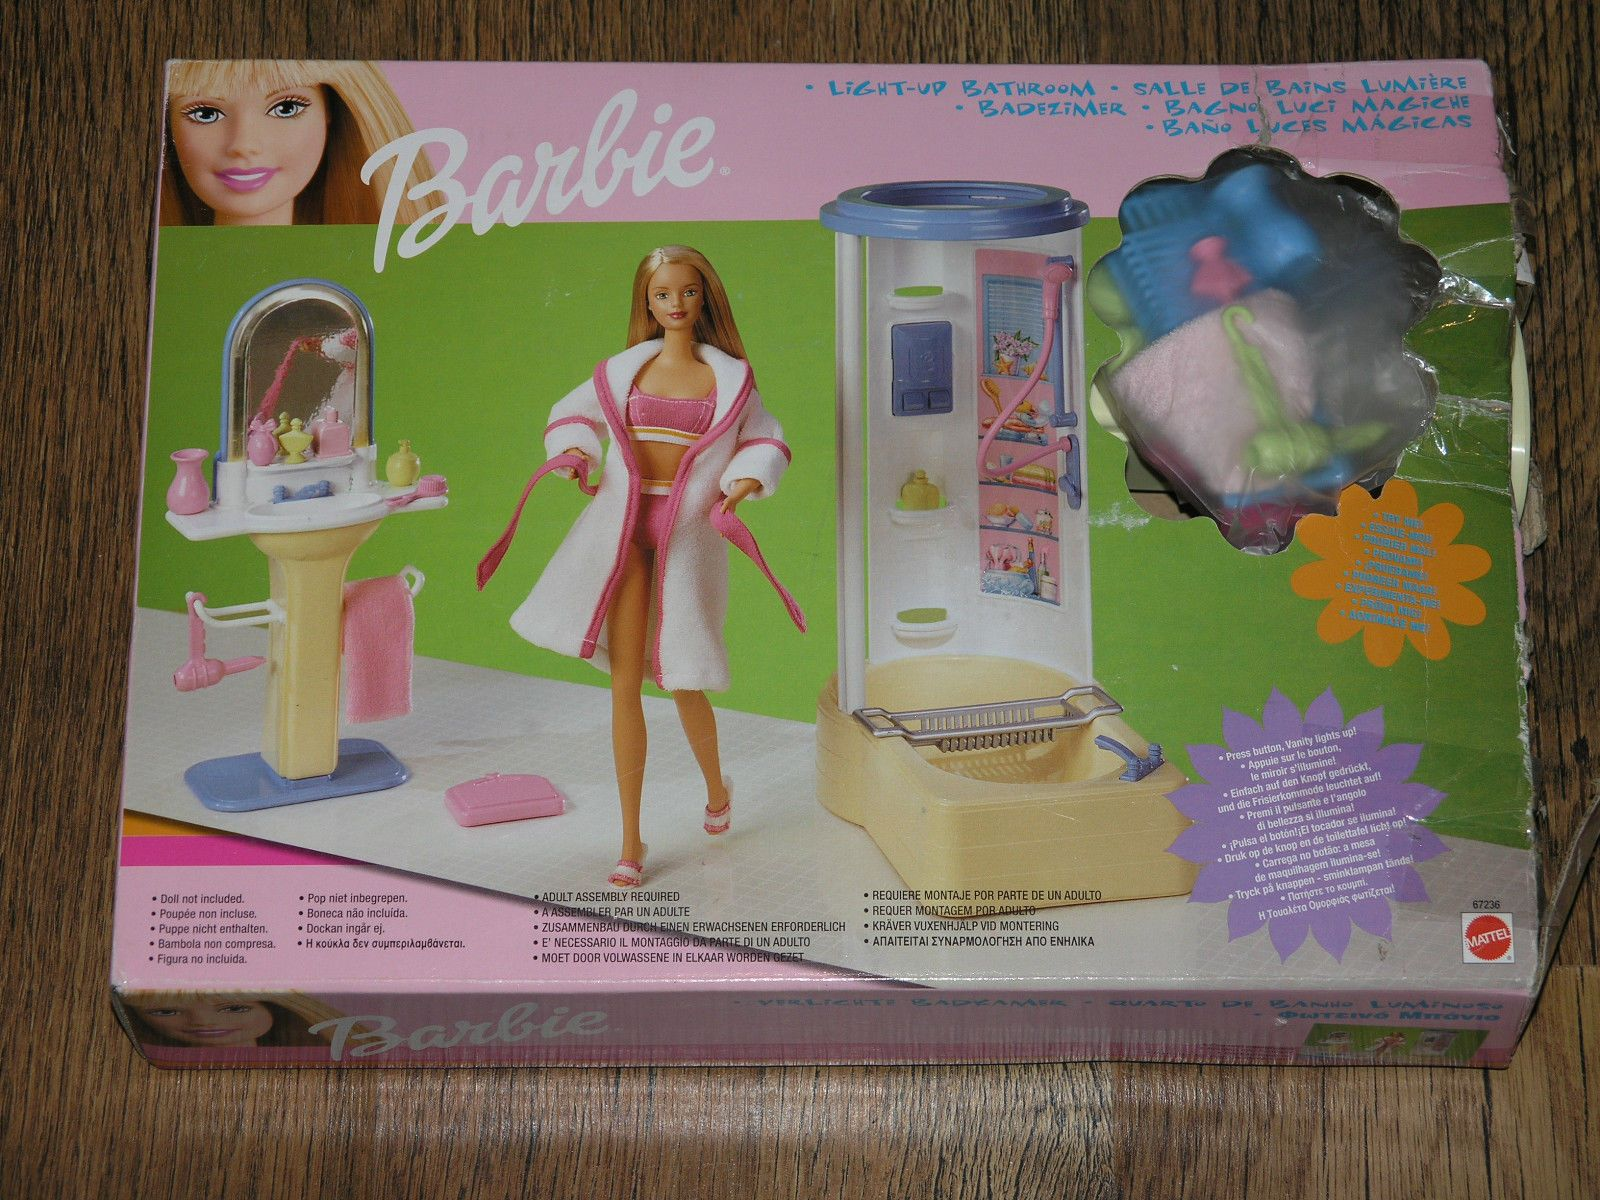 Barbie Vintage Light Up Bathroom Set 67236 in Dolls & Bears ...